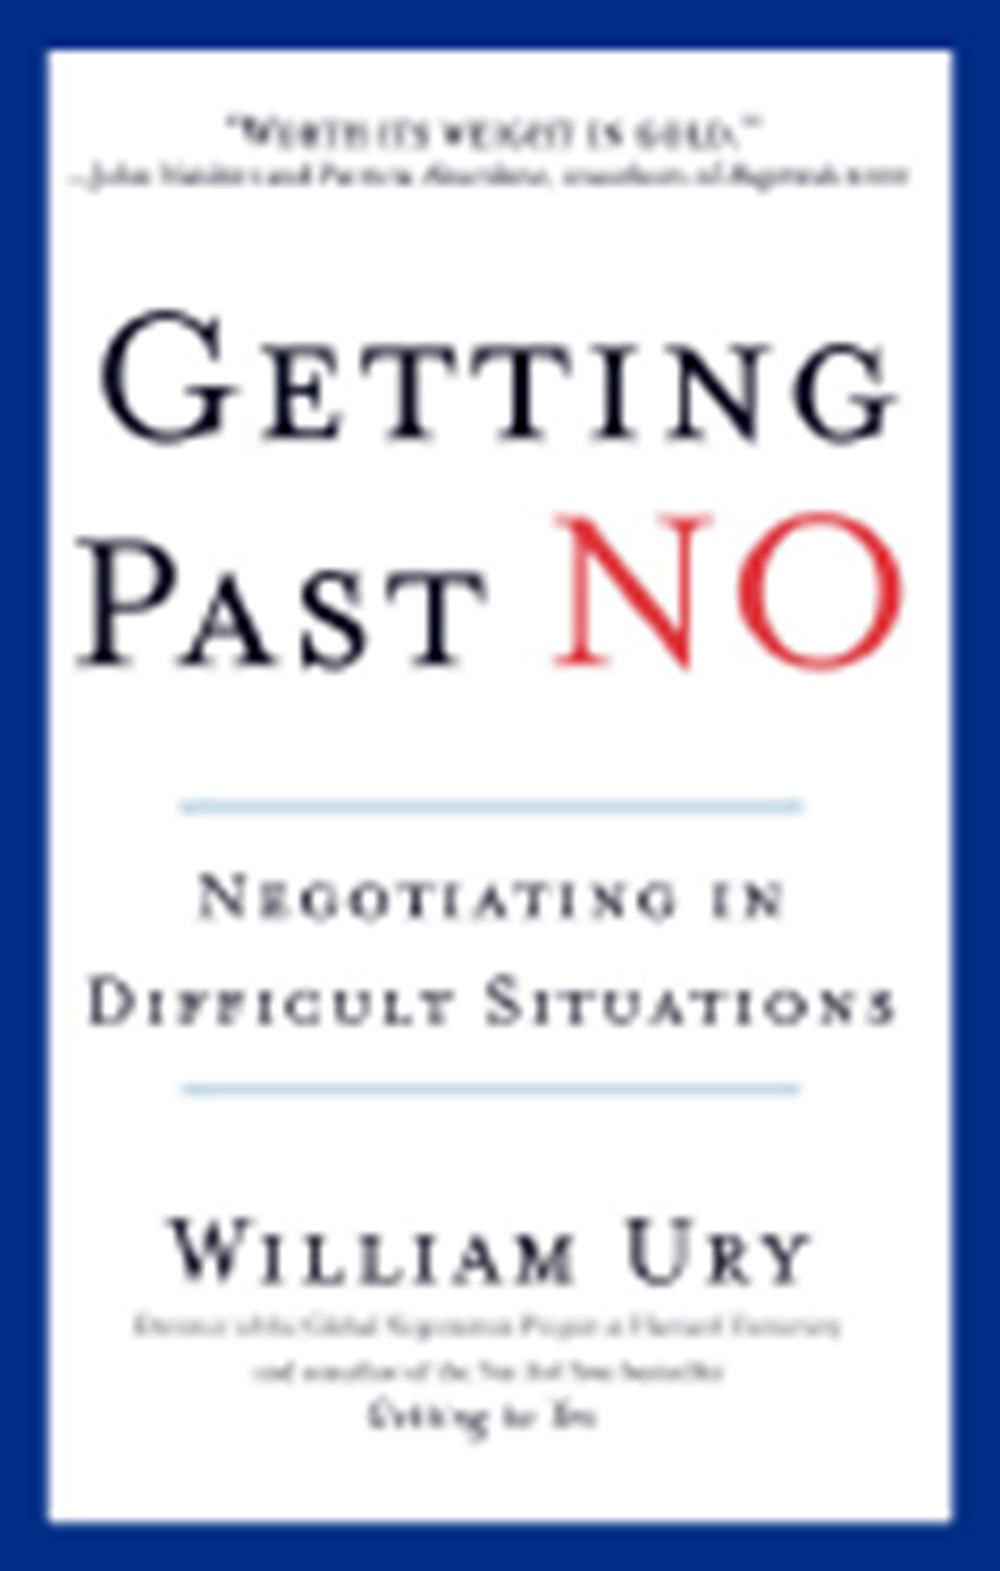 Getting Past No Negotiating in Diffcult Situations (Revised)